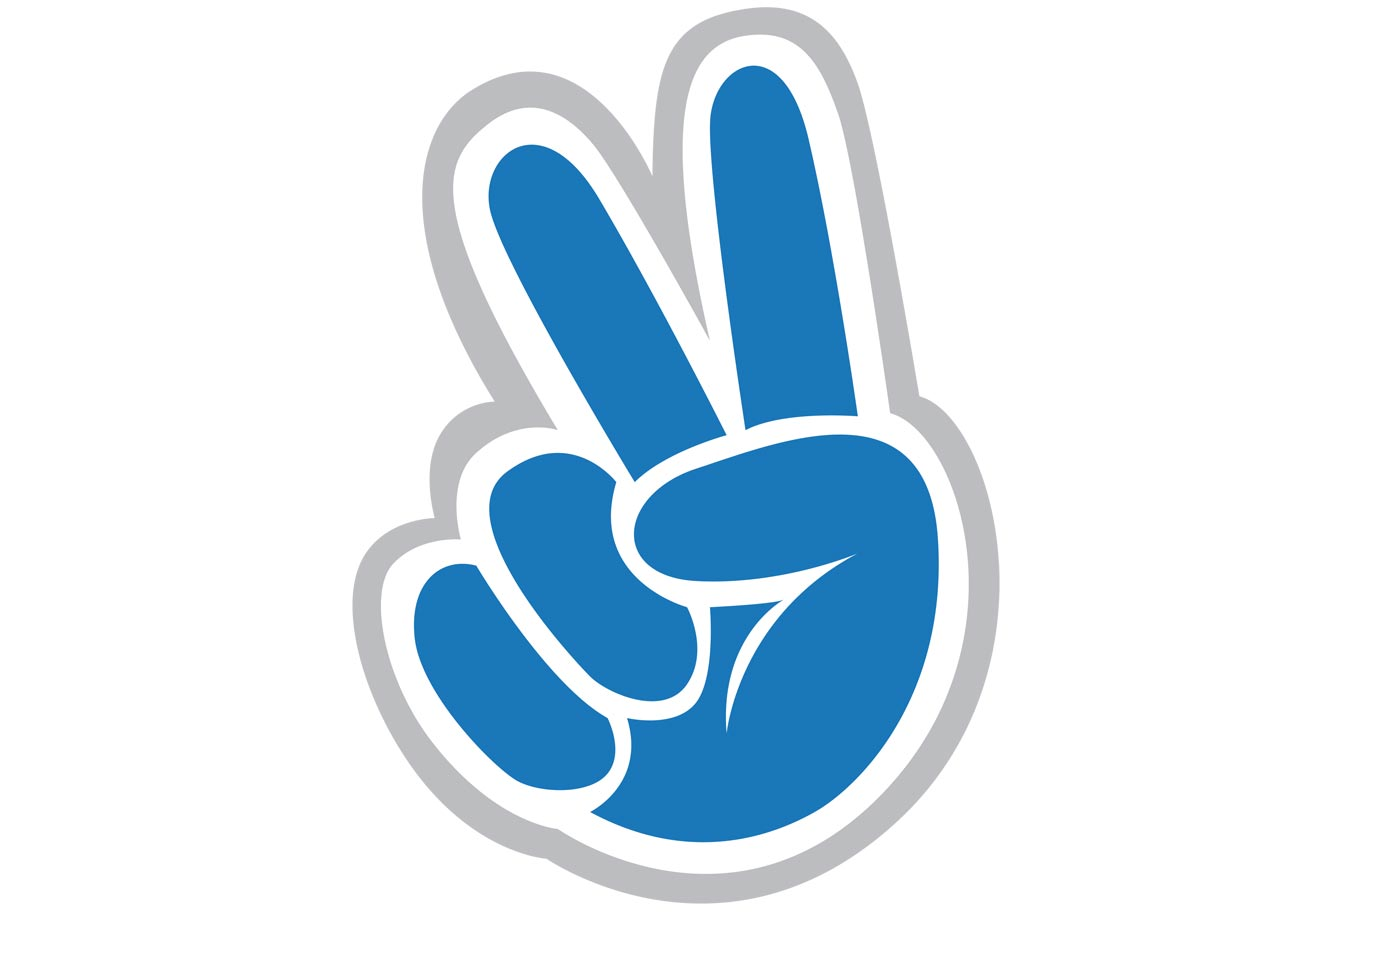 Peace Sign Vector | Free Vector Art at Vecteezy!